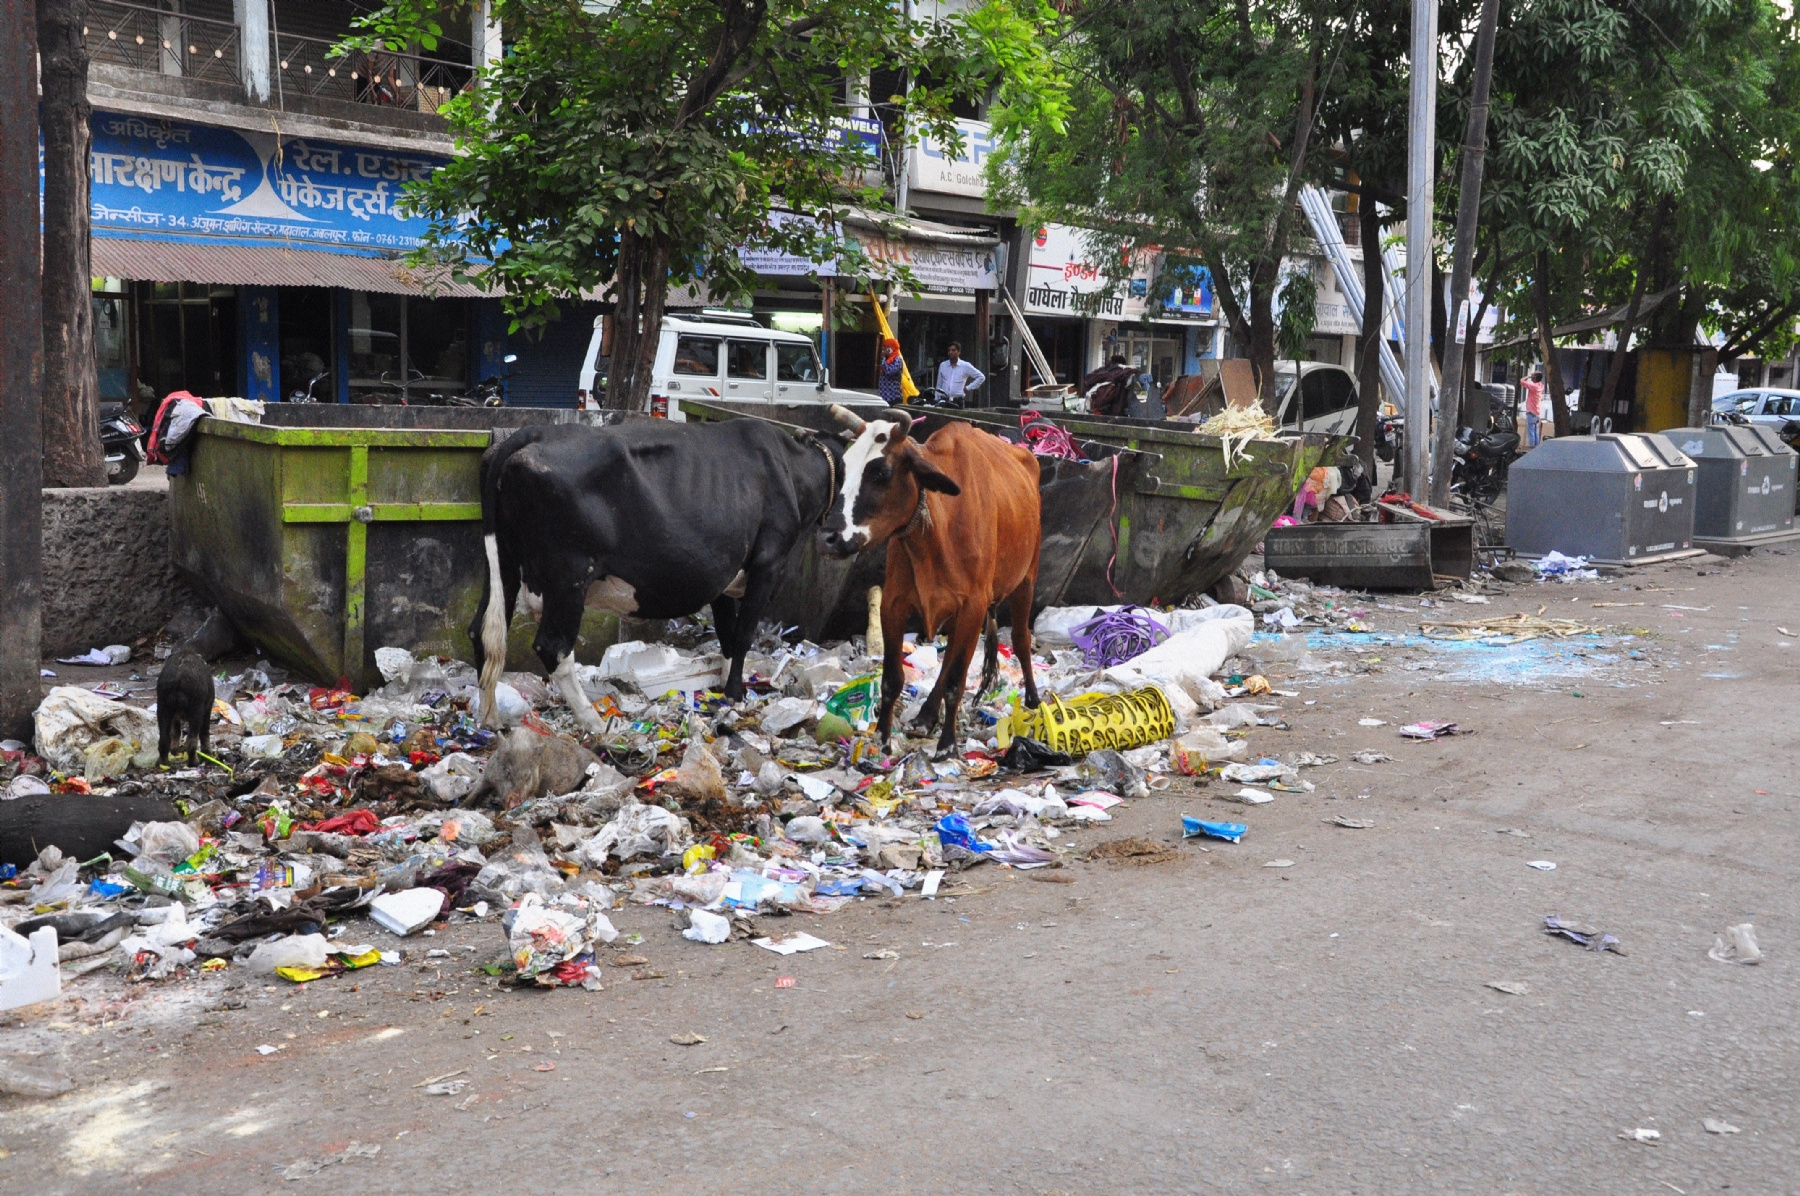 Uncleanliness causing inconvenience to citizens